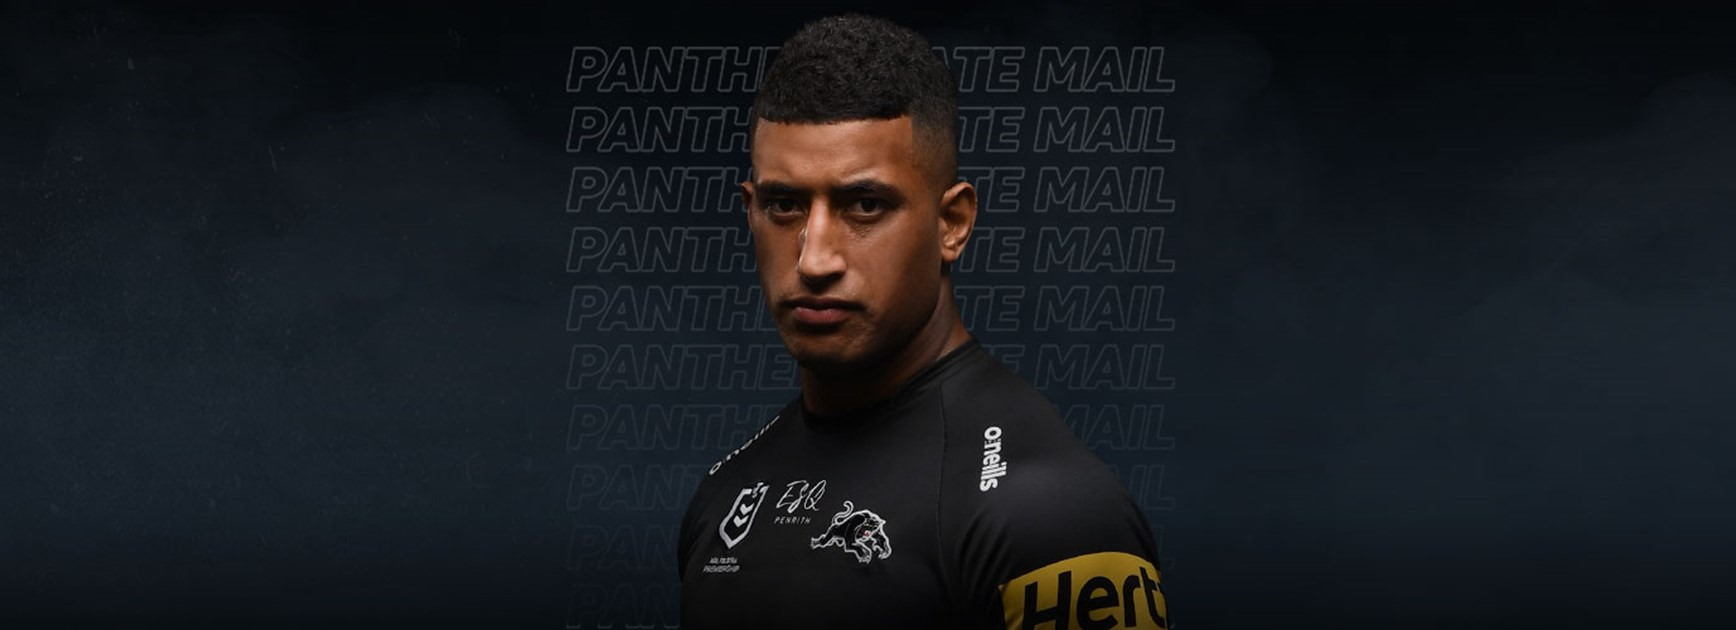 NRL Late Mail: Round 1